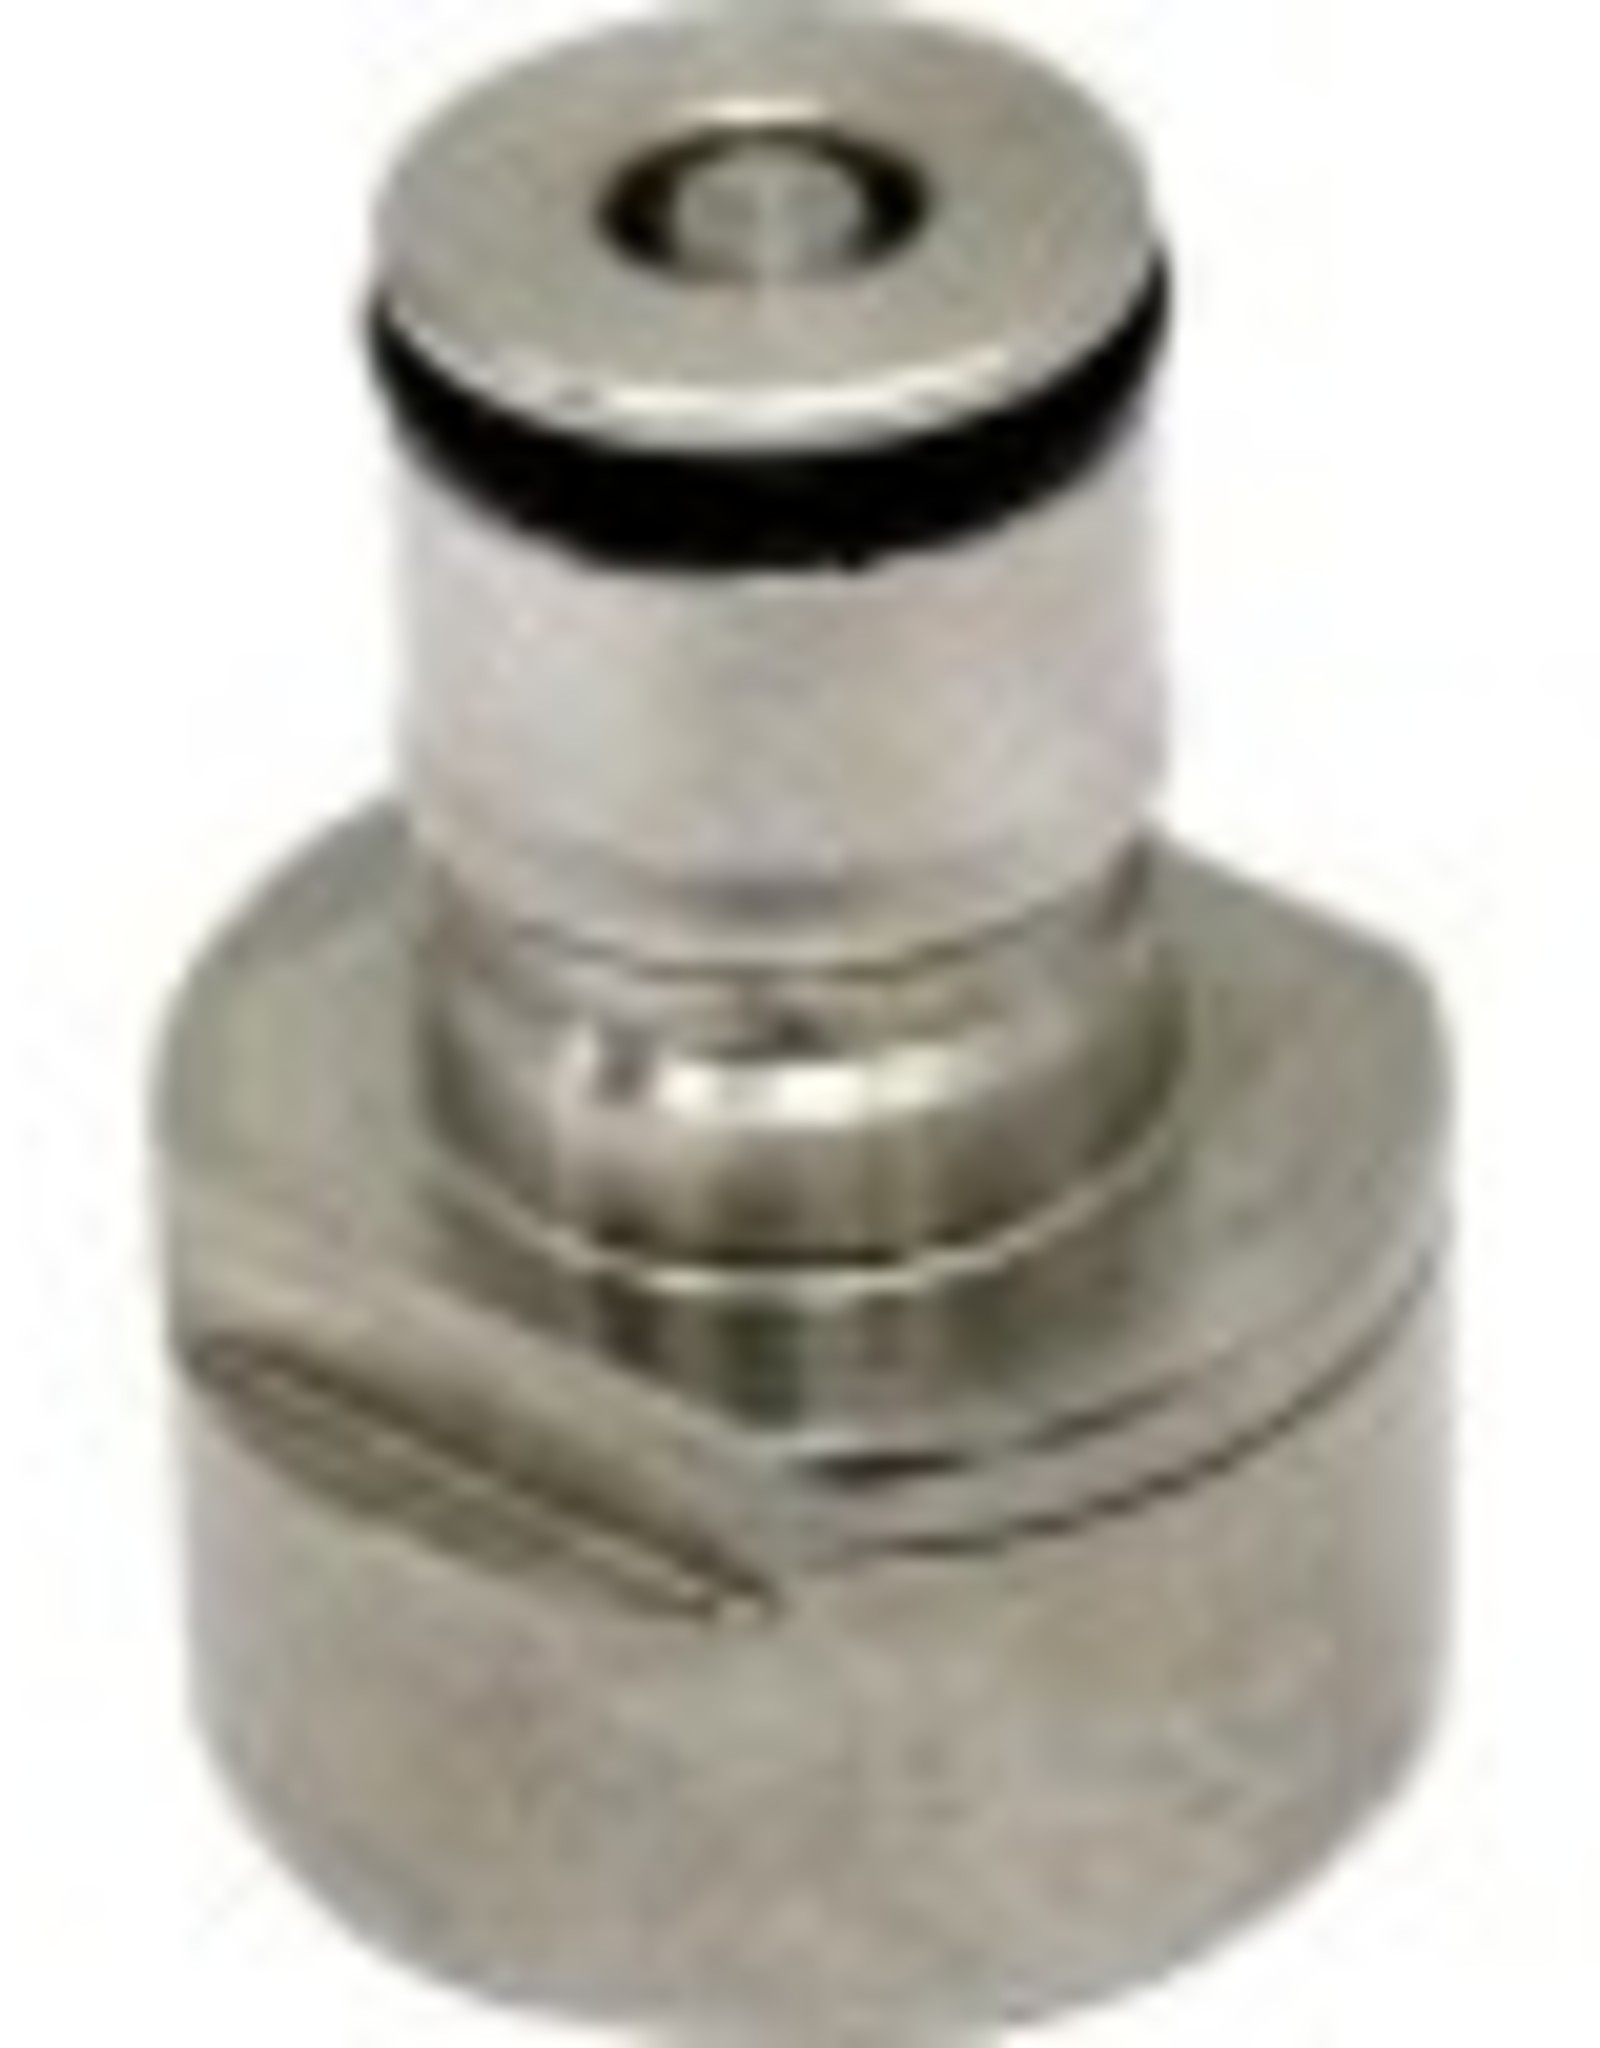 SANKE TO BALL LOCK ADAPTER-GAS SIDE